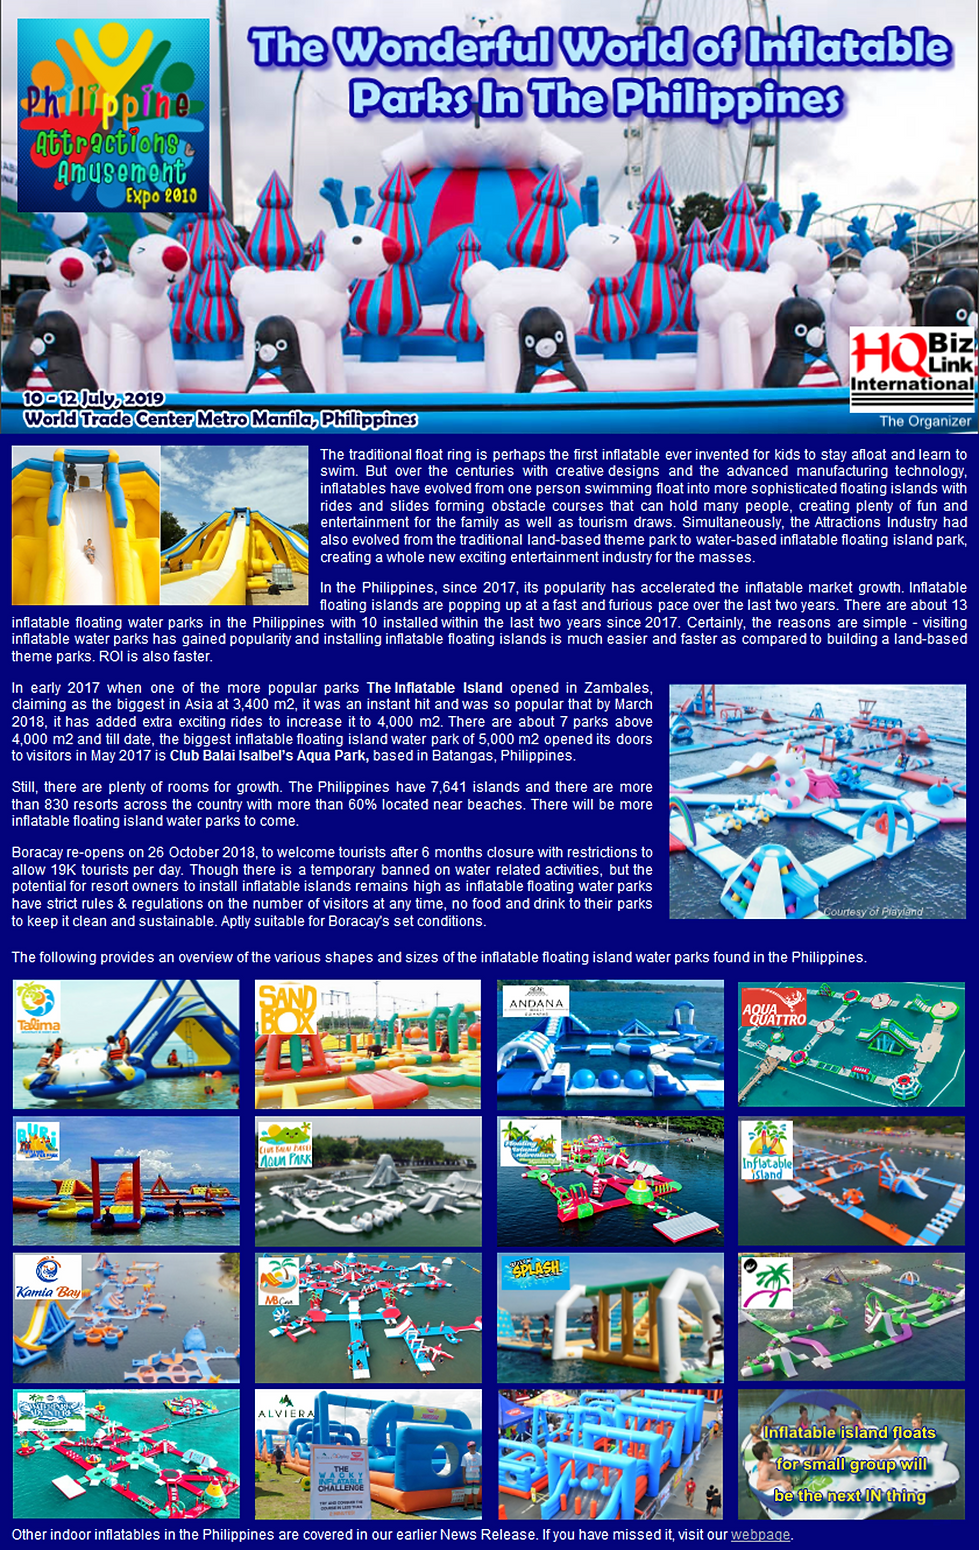 NR11 - PAExpo2019 News Release (Floating